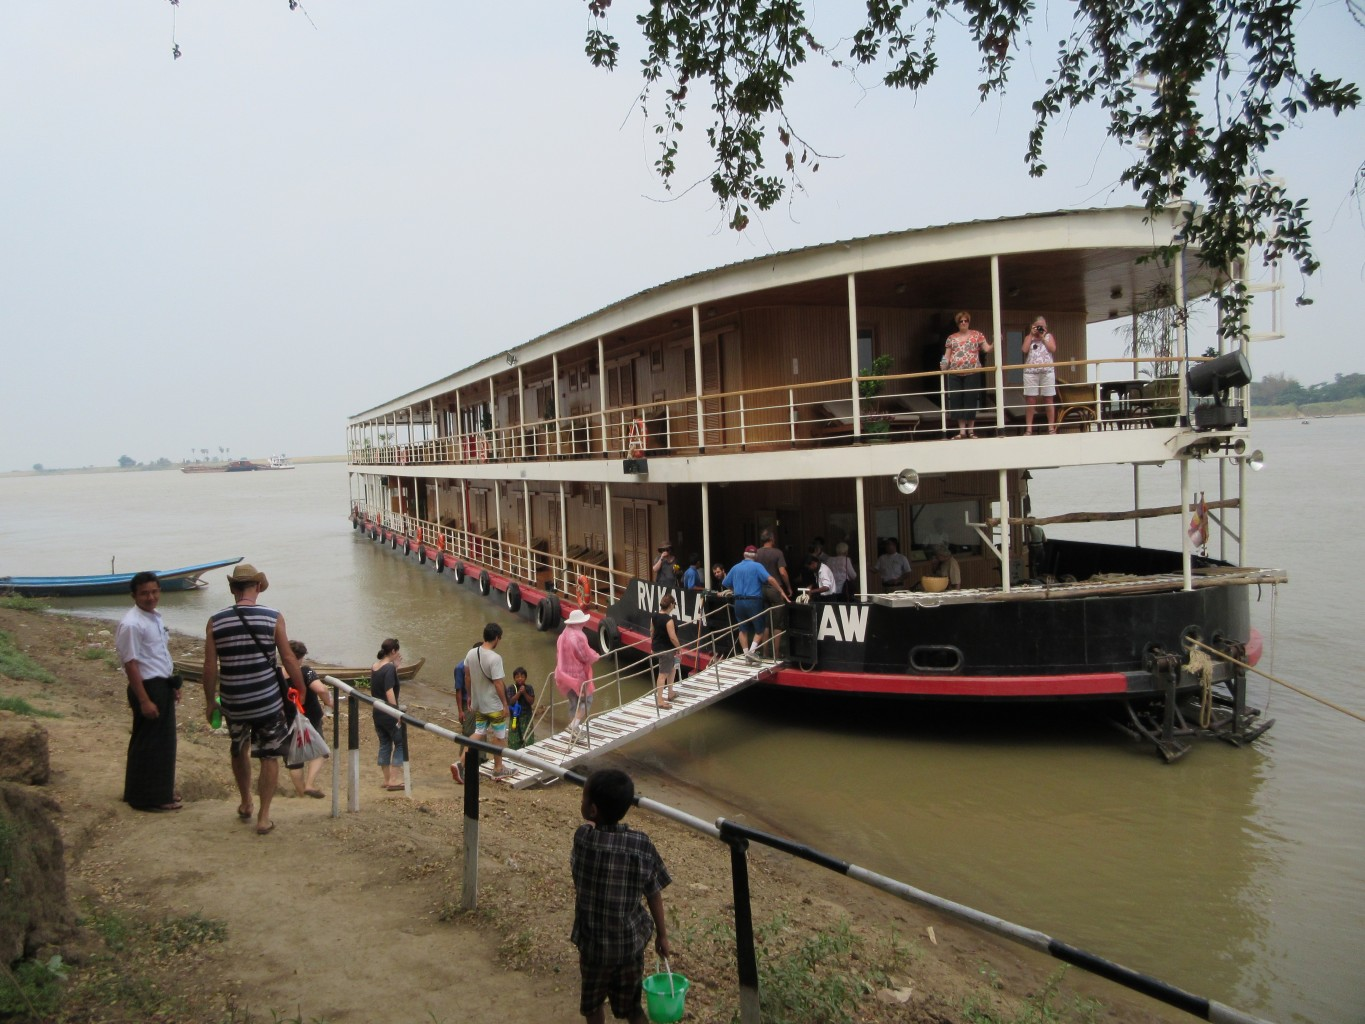 The trip to the ship. The Kalaw Pandaw tied up along the Irrawaddy. * Photo: Heidi Sarna